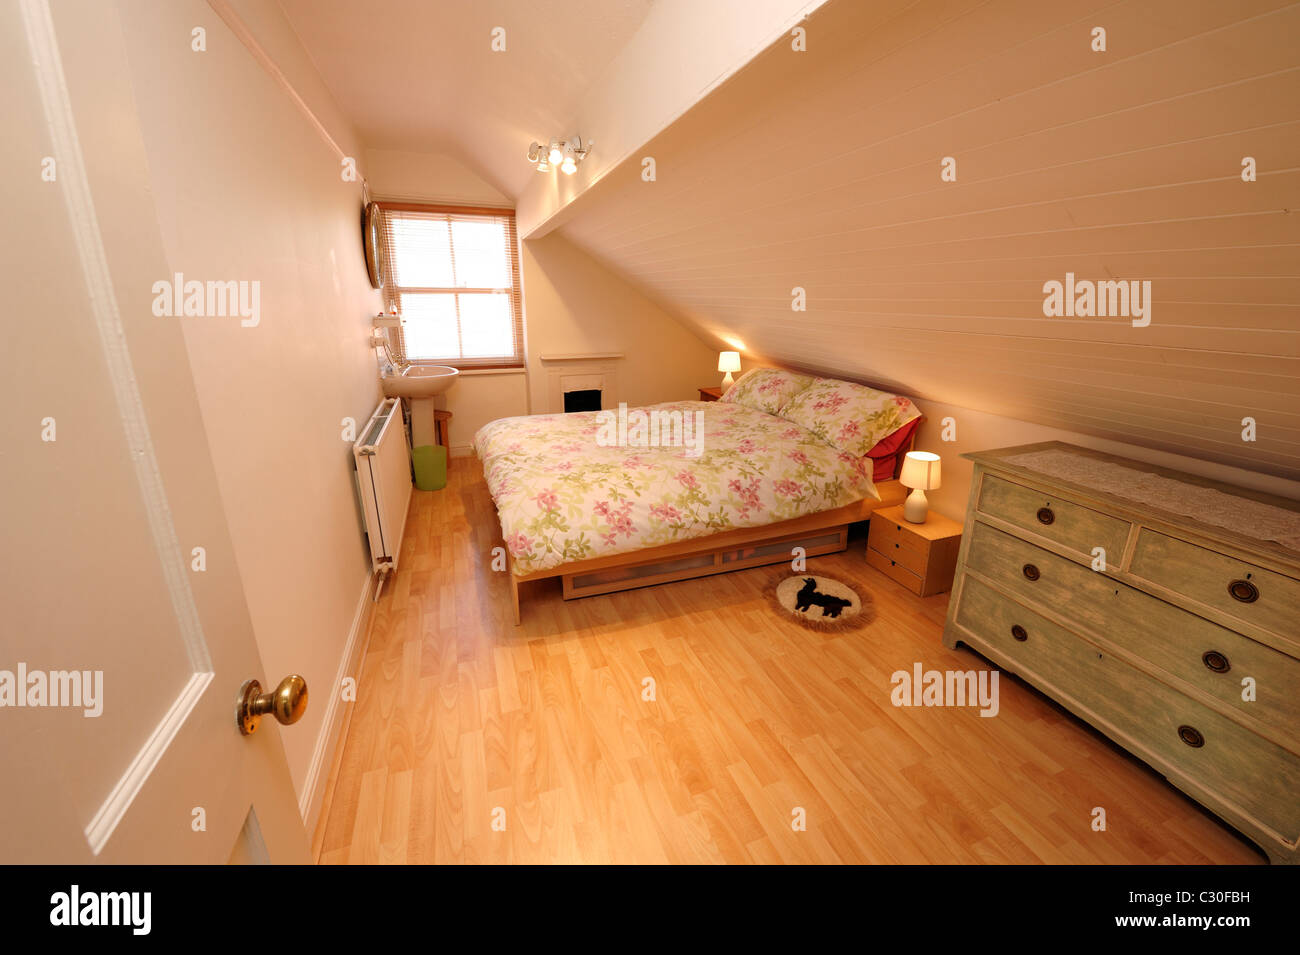 Modern loft conversion bedroom - Stock Image